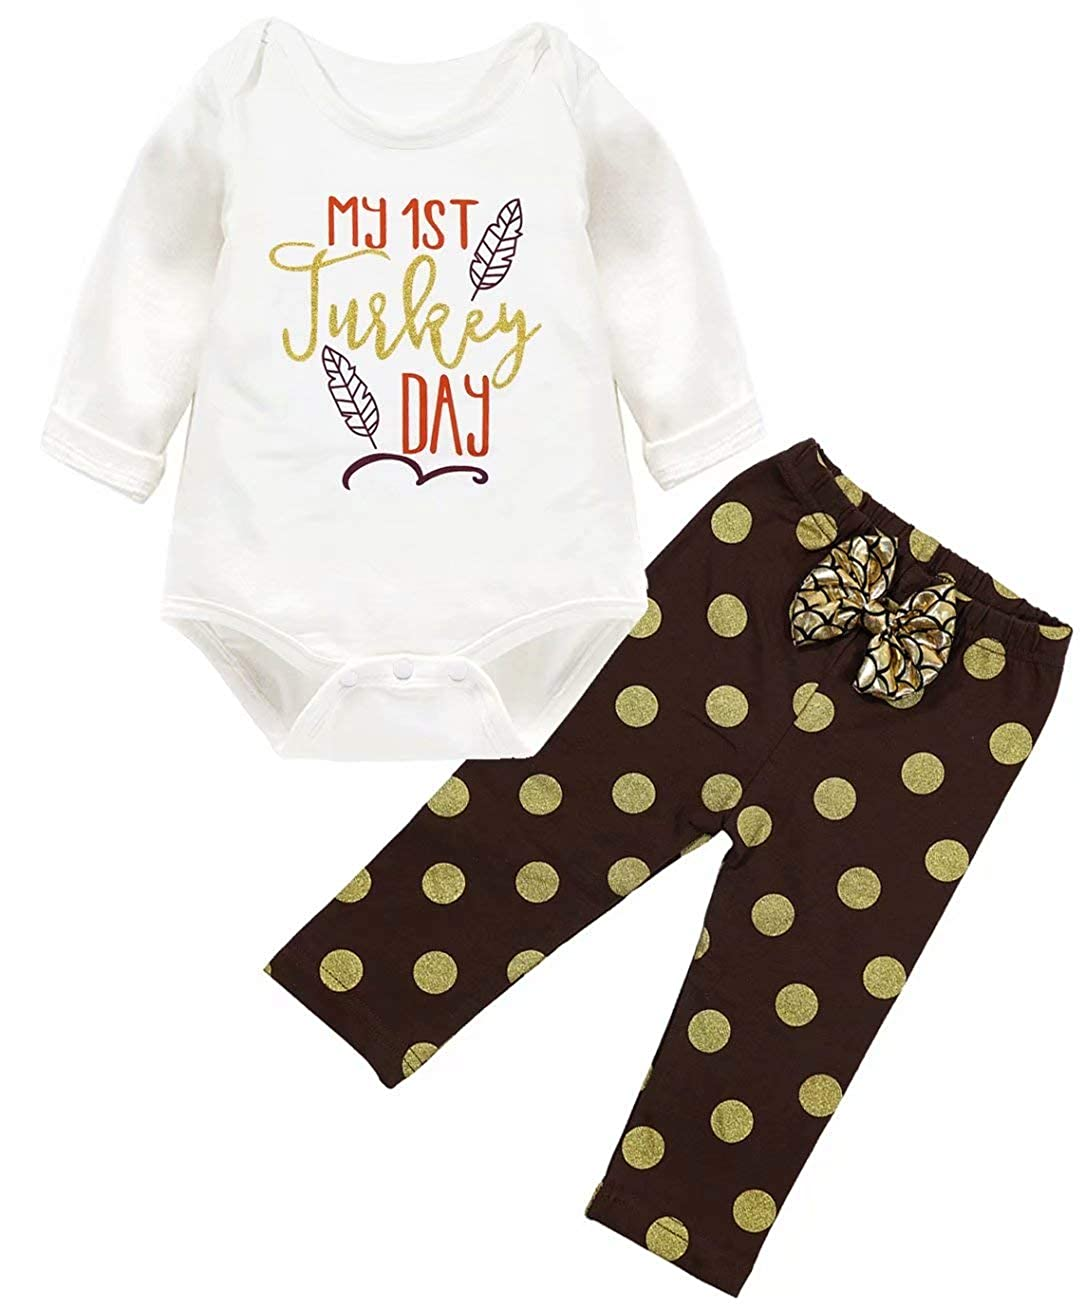 EGELEXY My 1st Turkey Day Outfit Baby Girls Long Sleeve Romper Polka Dot Pant Outfit Thanksgiving Gift